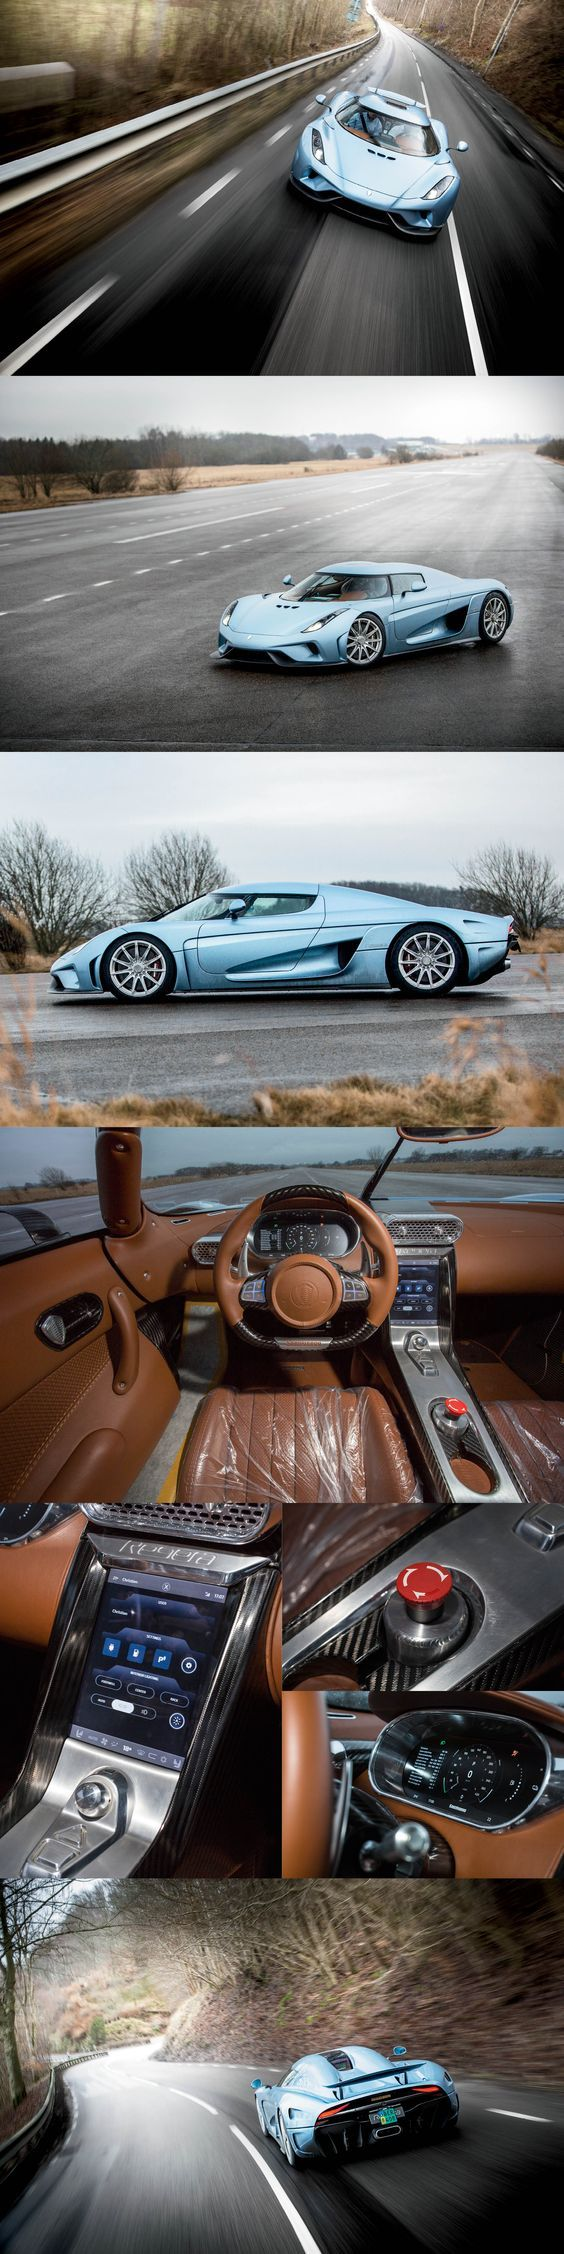 MUST SEE What A Pretty Site To See ''2017 Koenigsegg Regera Prototype'' Here are the hottest new cars, trucks, sports cars, muscle cars, crossovers, SUVs, vans, and everything in between set to go on sale within the next few years. Find out what's coming soon with news and pictures of the future cars and concepts. Concept Cars That Will Make You Rethink The Future. The most futuristic concept cars in the world. The  Best New Concept Cars For The Future. Checkout the photos and read about som...: